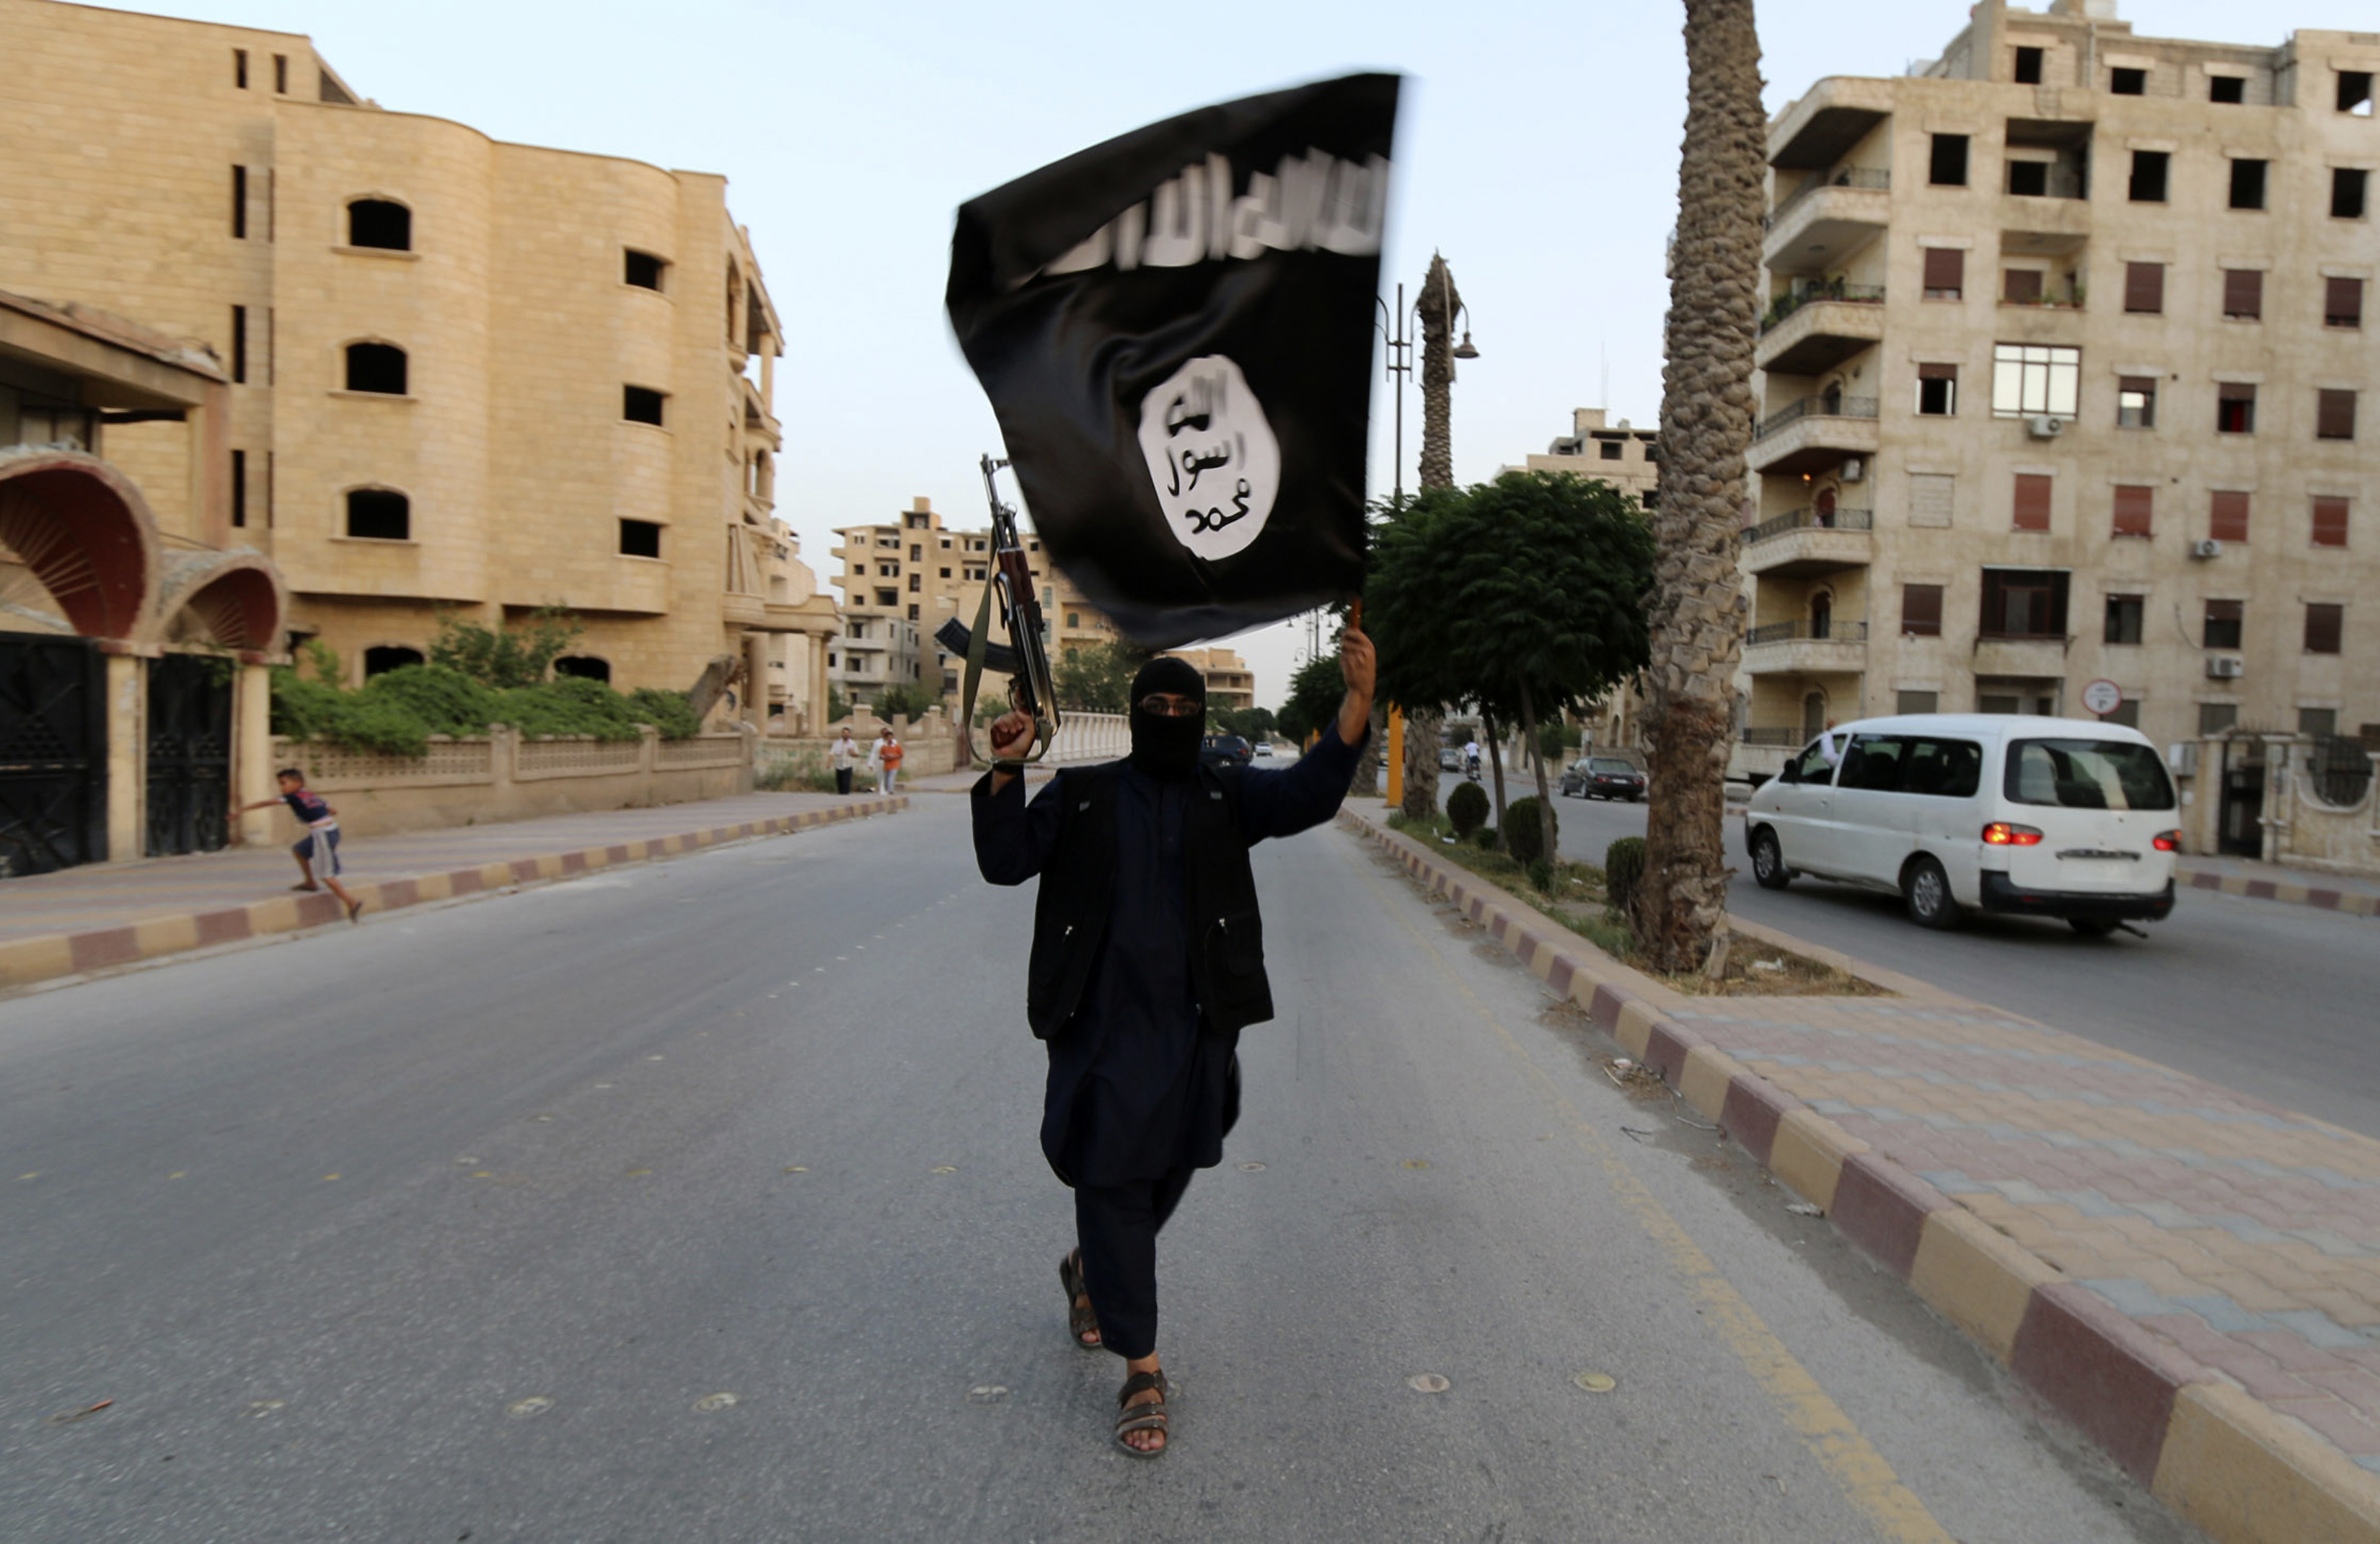 A member loyal to the Islamic State in Iraq and the Syria waves an ISIS flag in Raqqa, Syria on June 29, 2014.